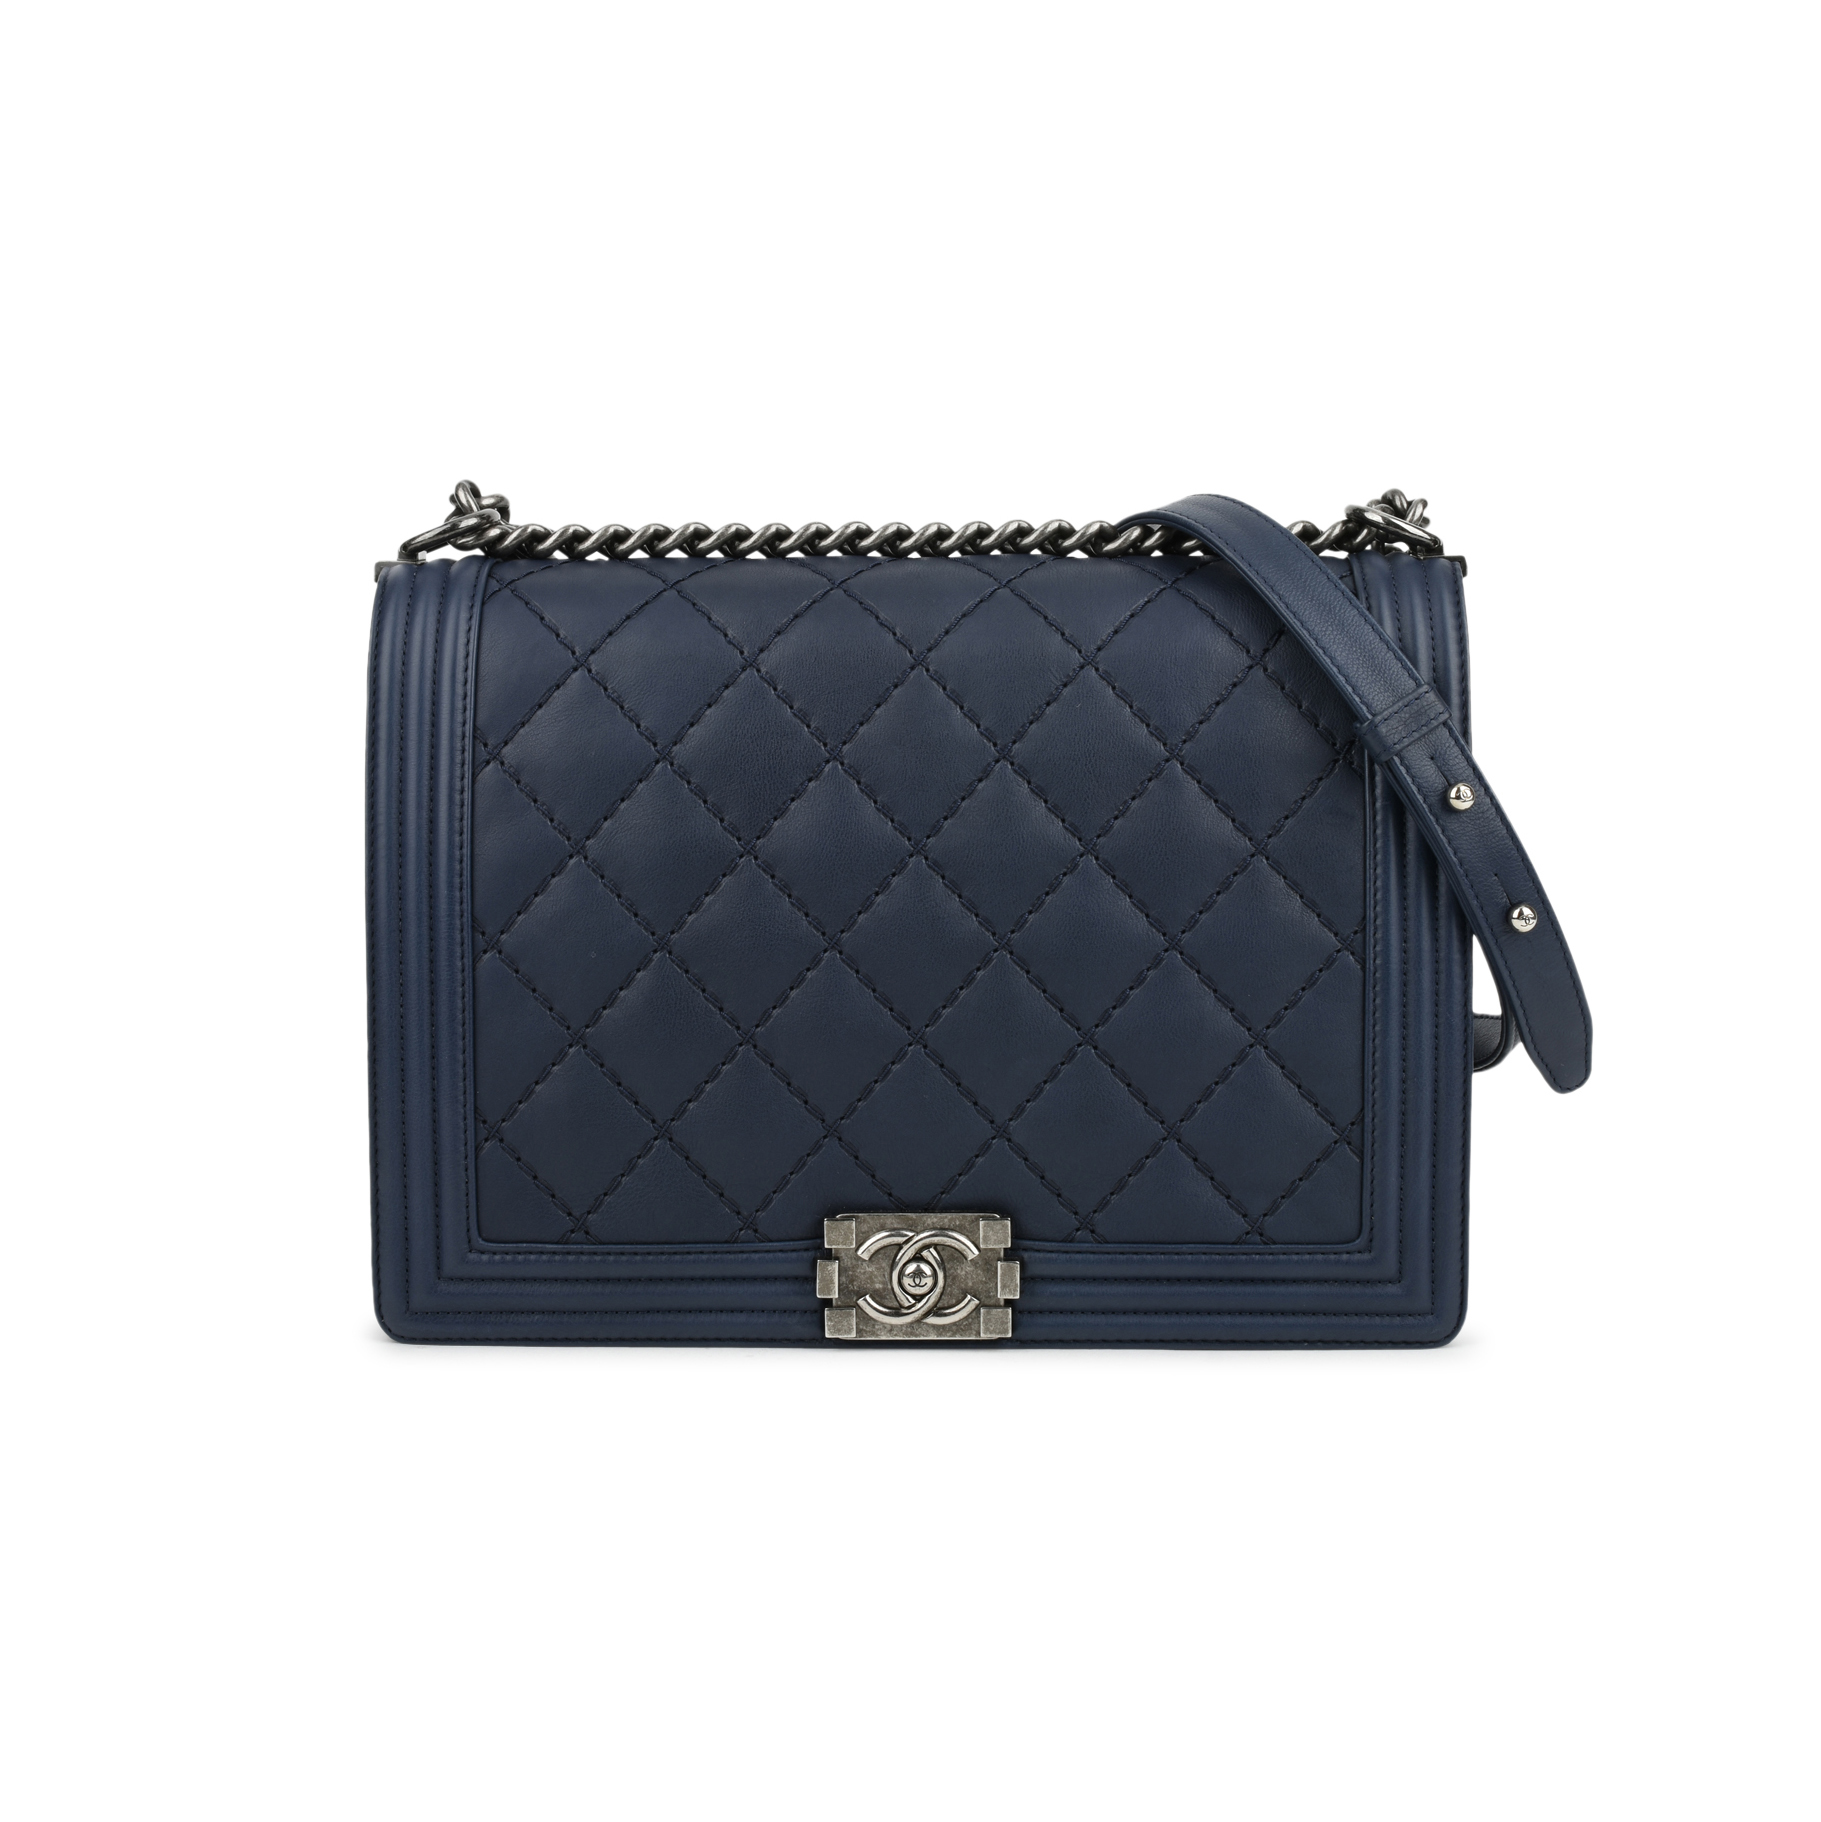 0e4da13d1639 Authentic Second Hand Chanel Large Boy Bag (PSS-291-00011) | THE FIFTH  COLLECTION